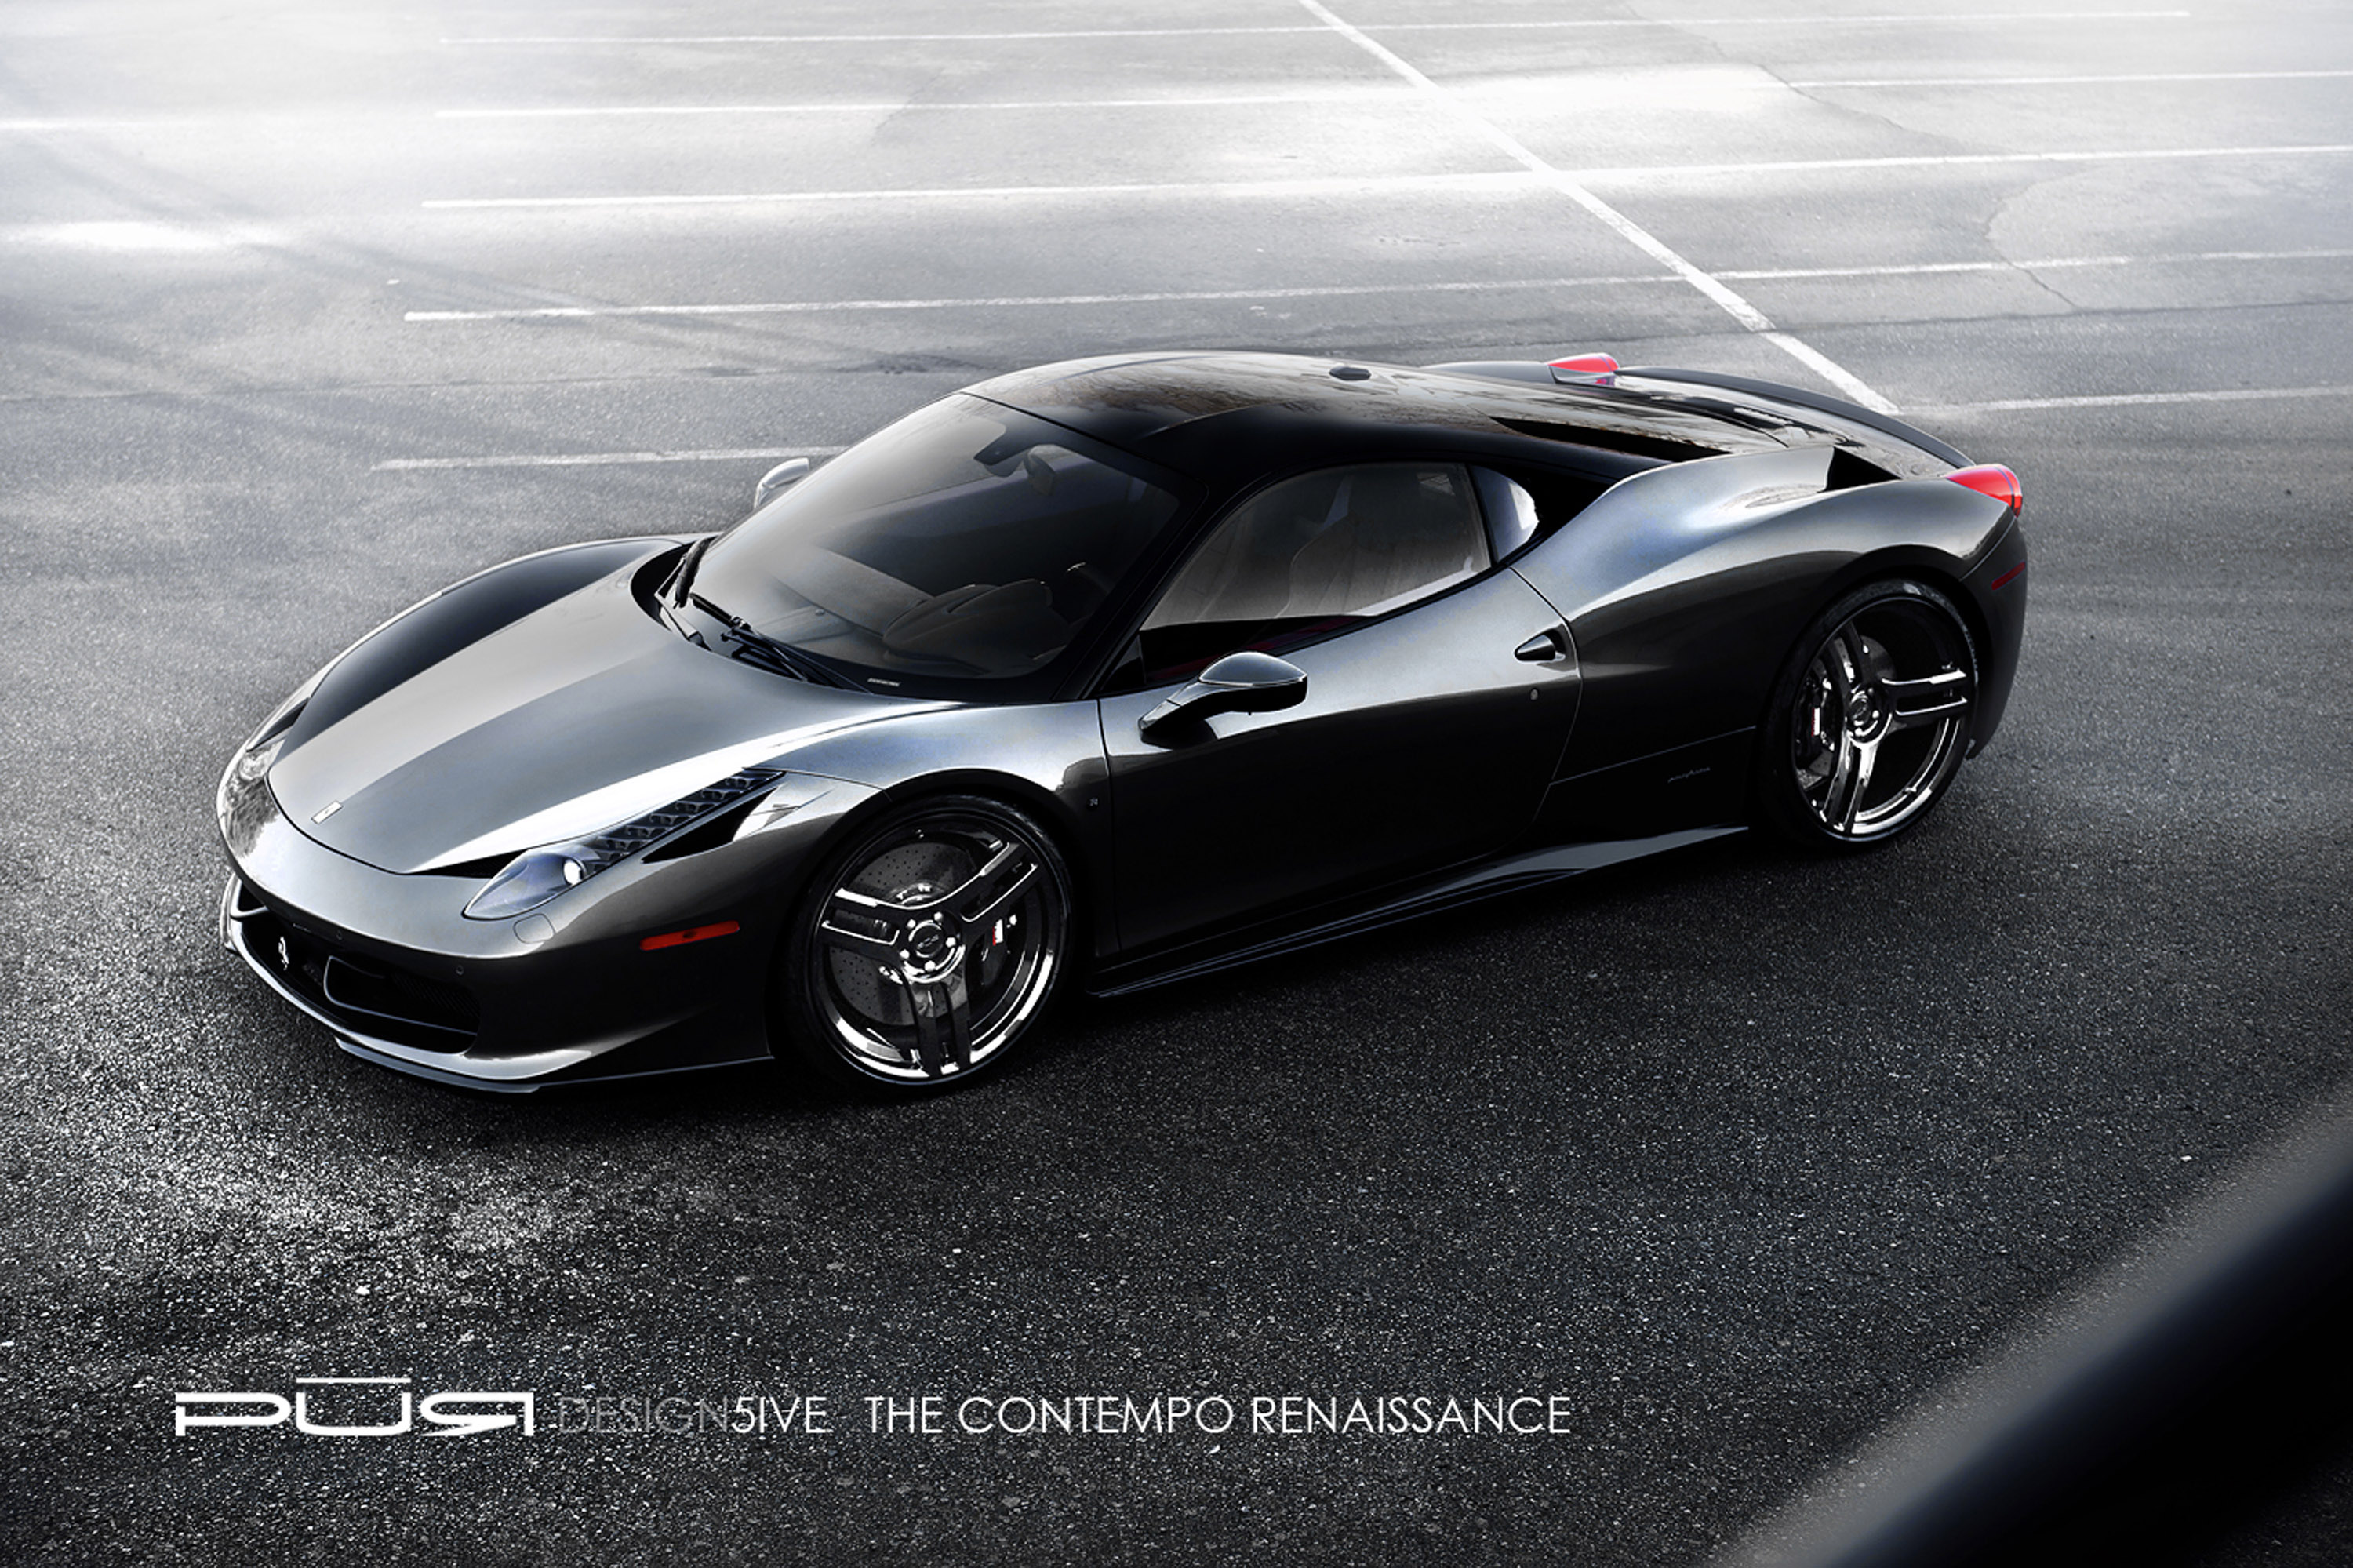 2012 ferrari 458 italia grey image collections hd cars wallpaper 2012 ferrari 458 italia design 5ive sr project kiluminati by sr download vanachro image collections vanachro Images